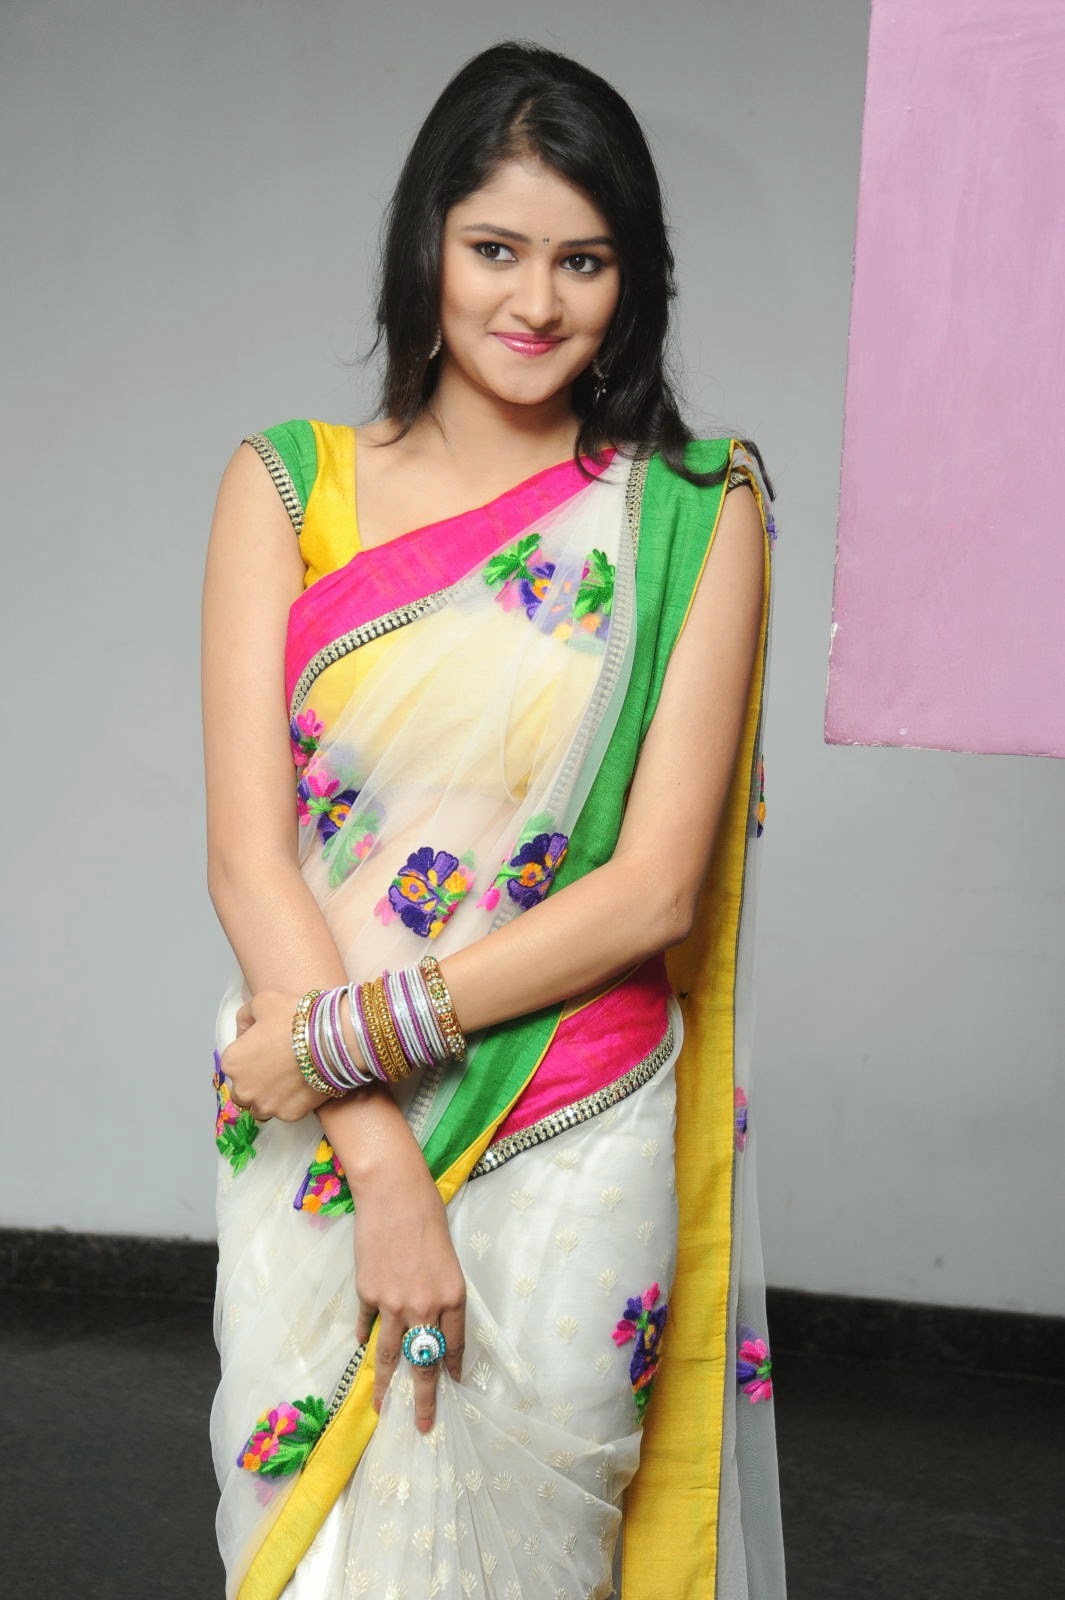 Kushi glamorous saree photos-HQ-Photo-18